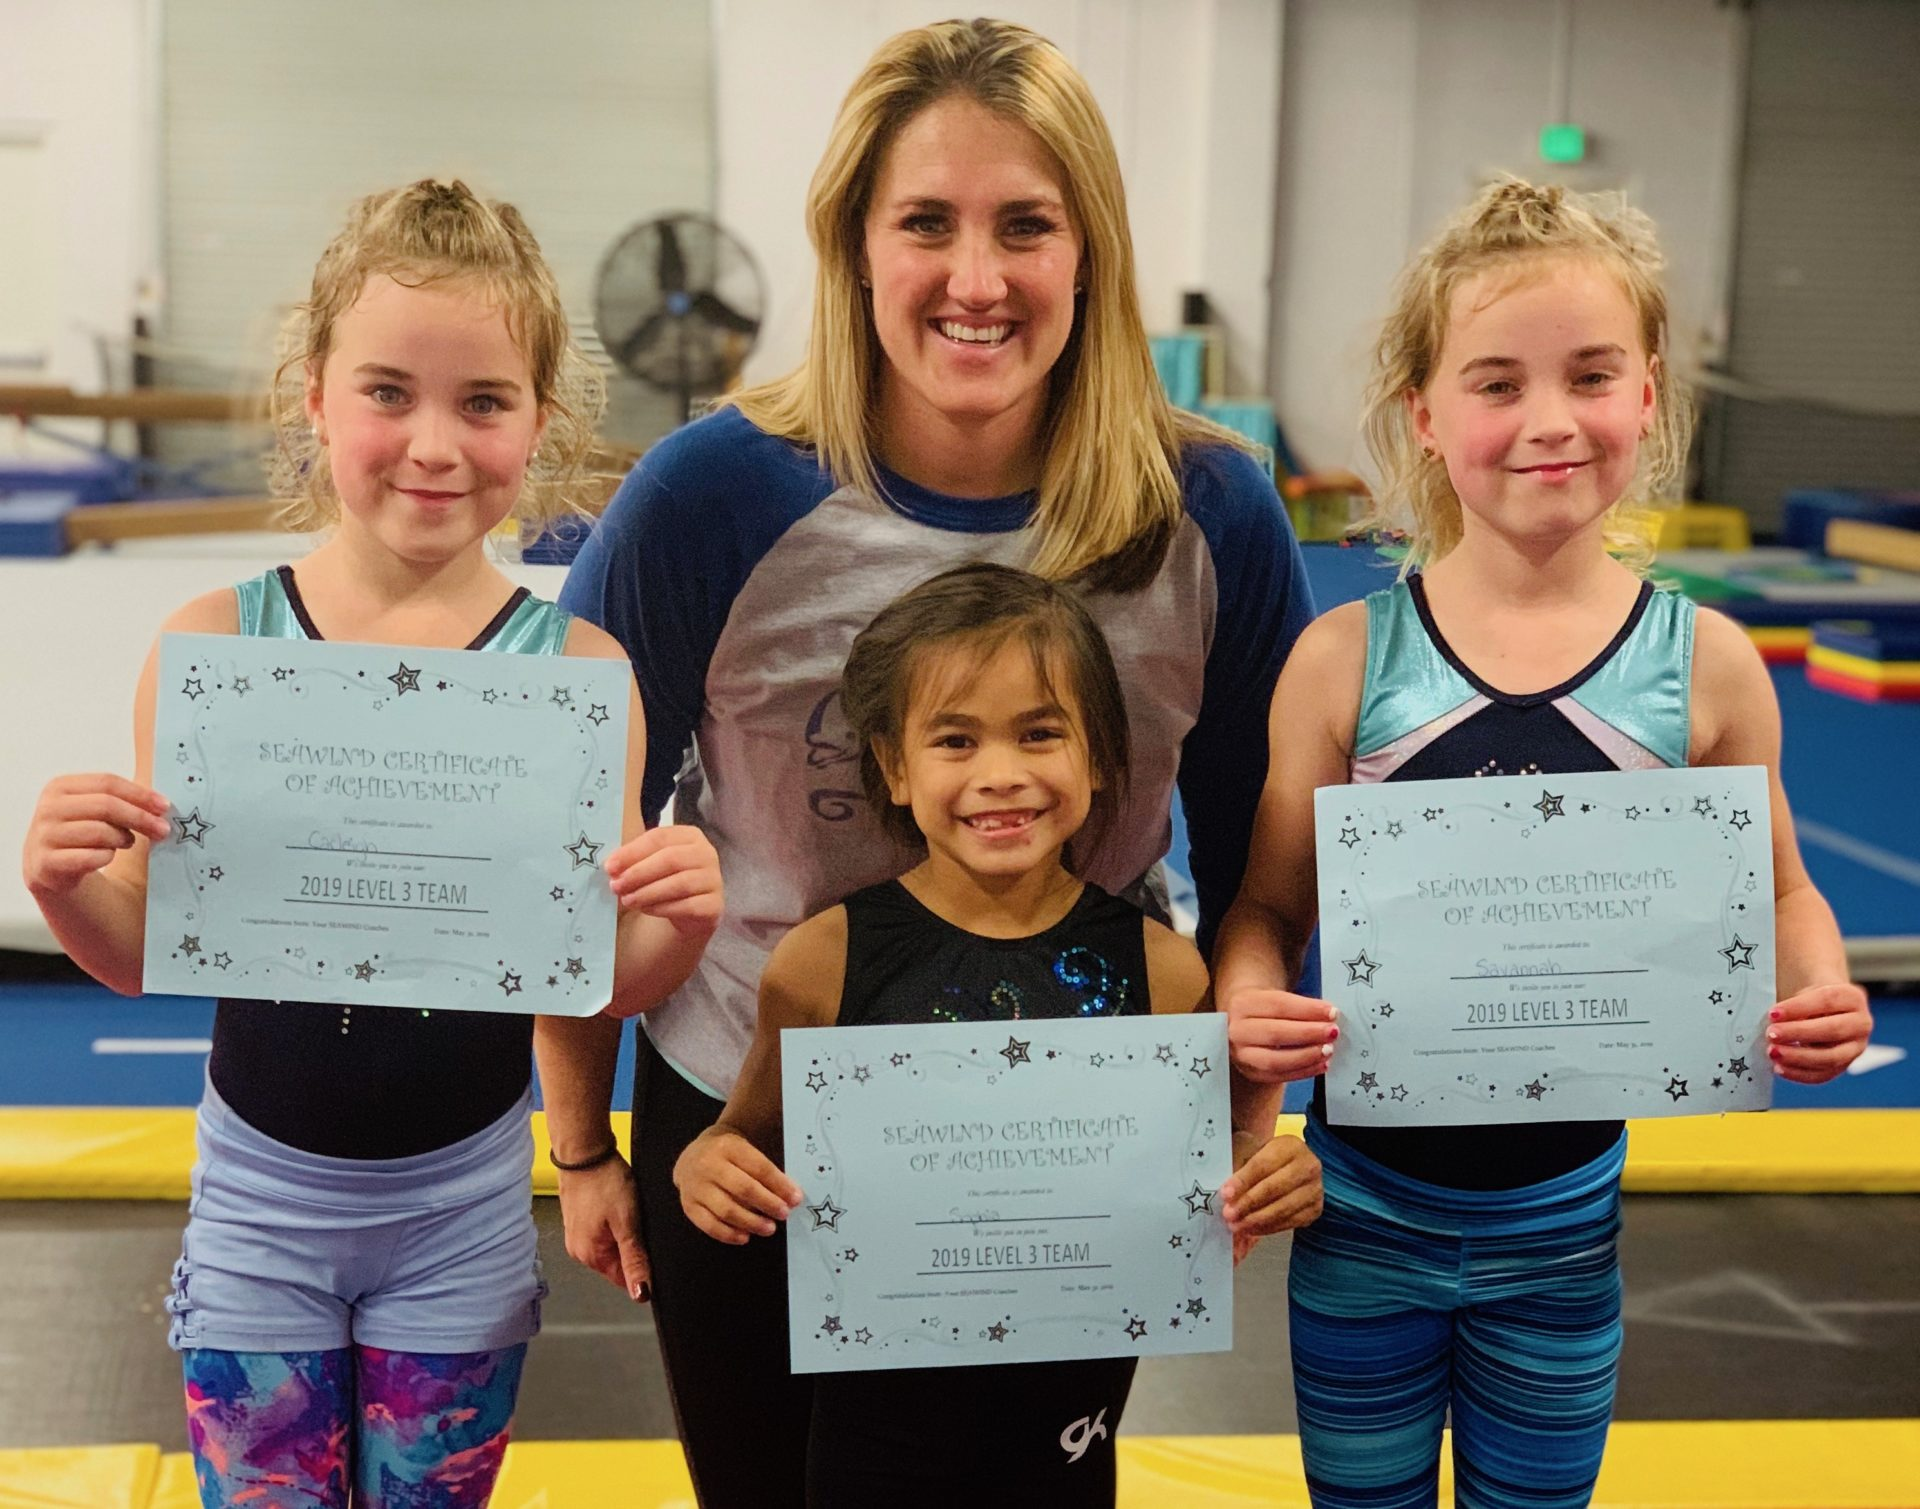 Lydia Jo Budny stands behind gymnastic students holding up awards